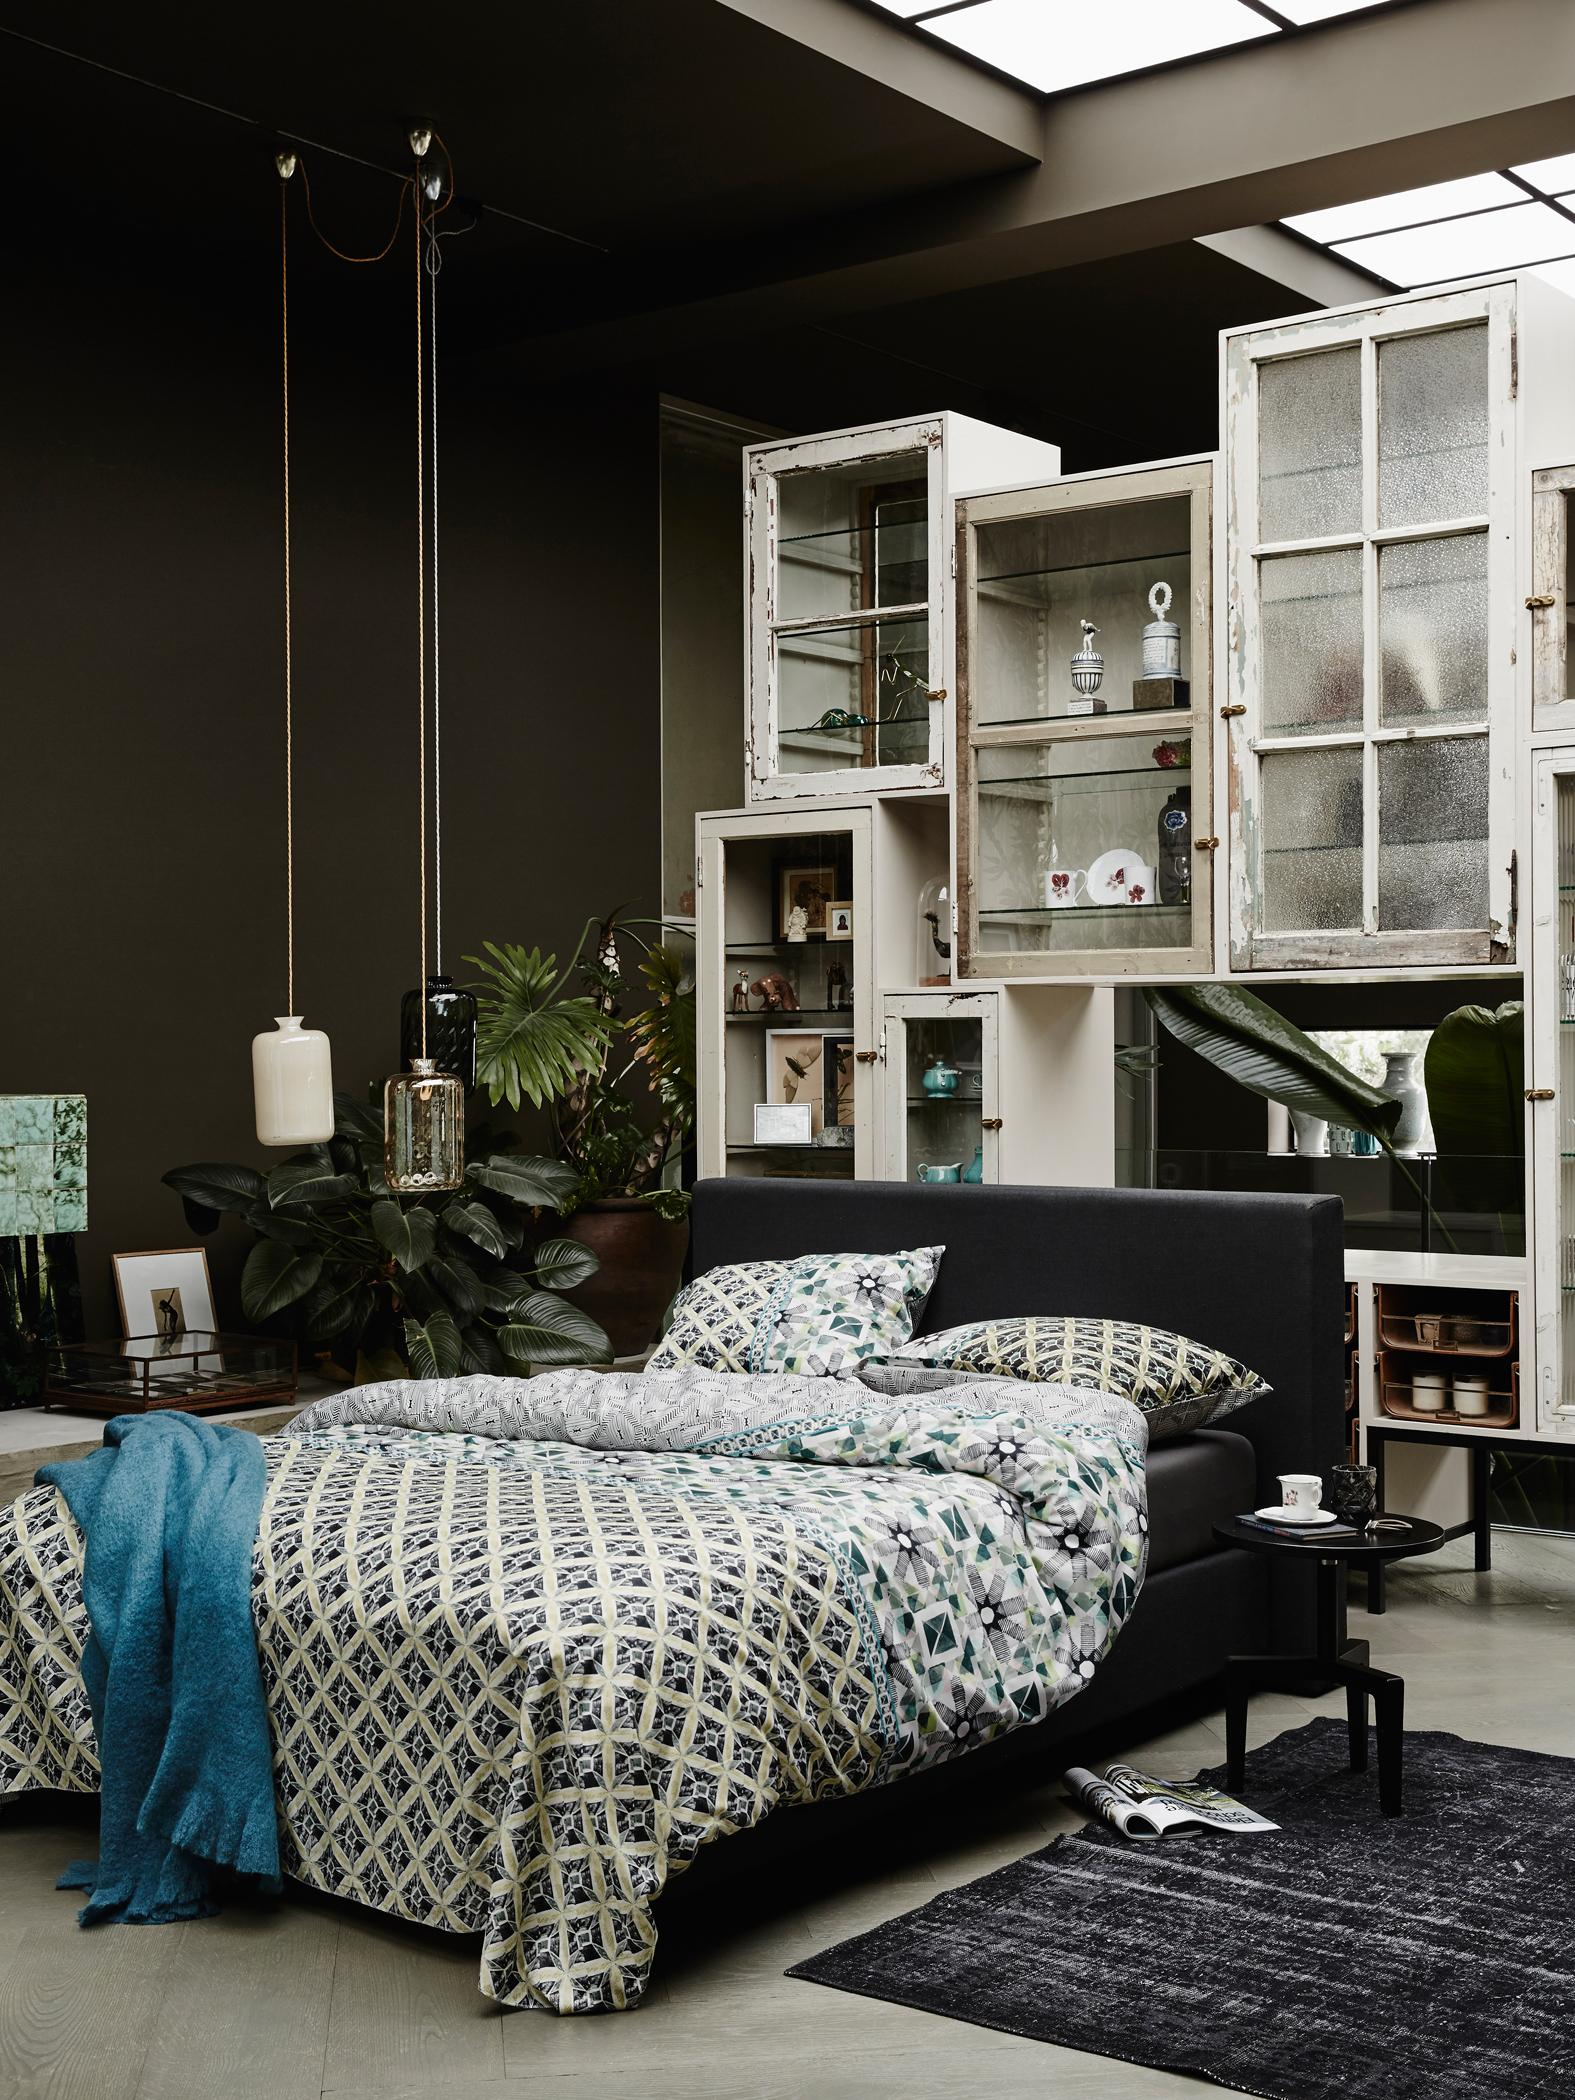 regal als raumtrenner bett bettw sche wohnwand z. Black Bedroom Furniture Sets. Home Design Ideas